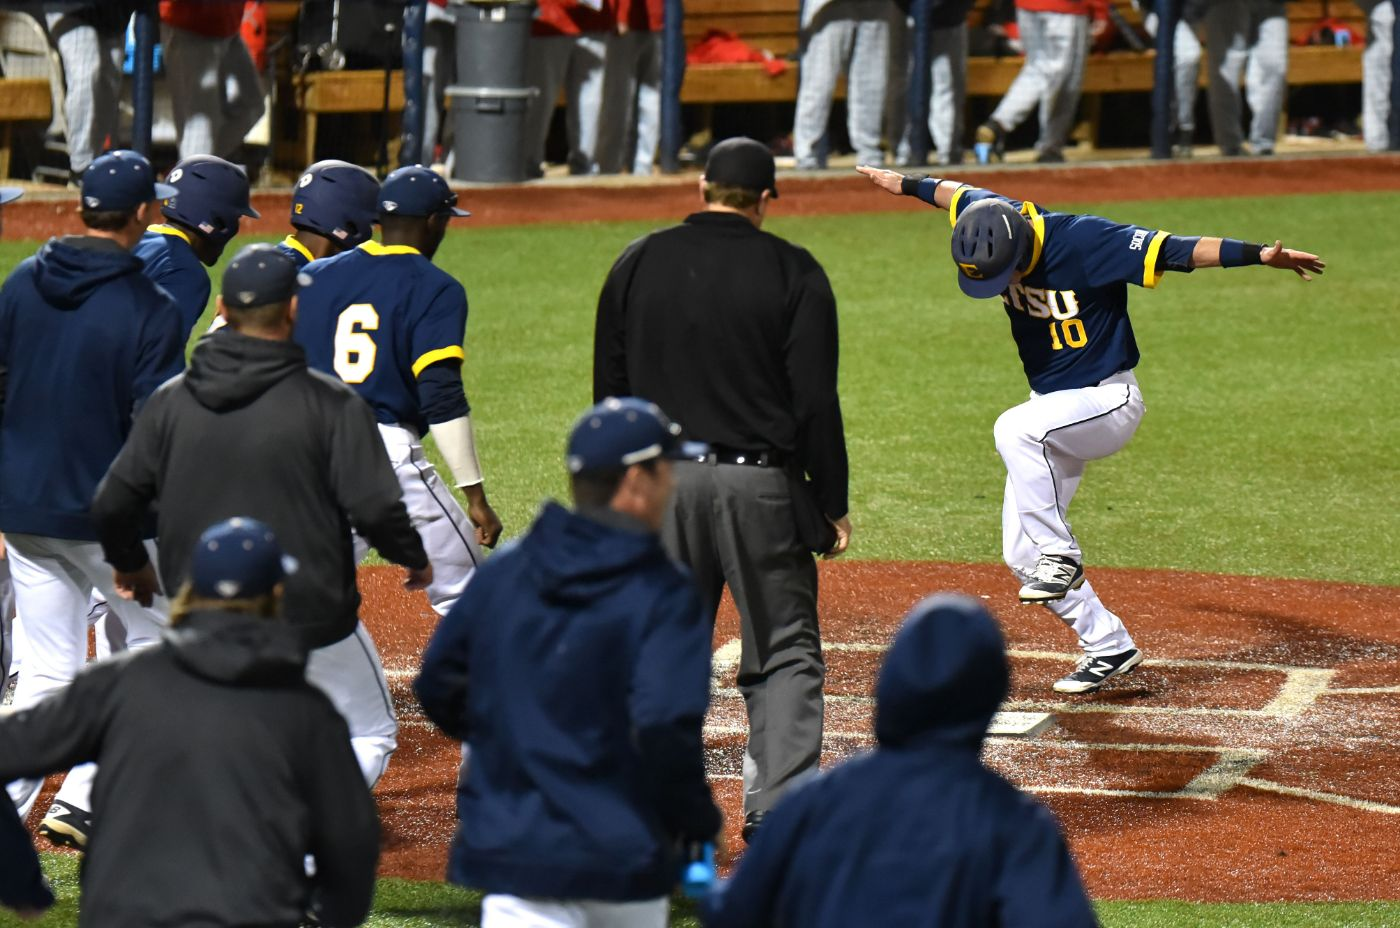 Crazy finish leads ETSU to 6-5 walk off win